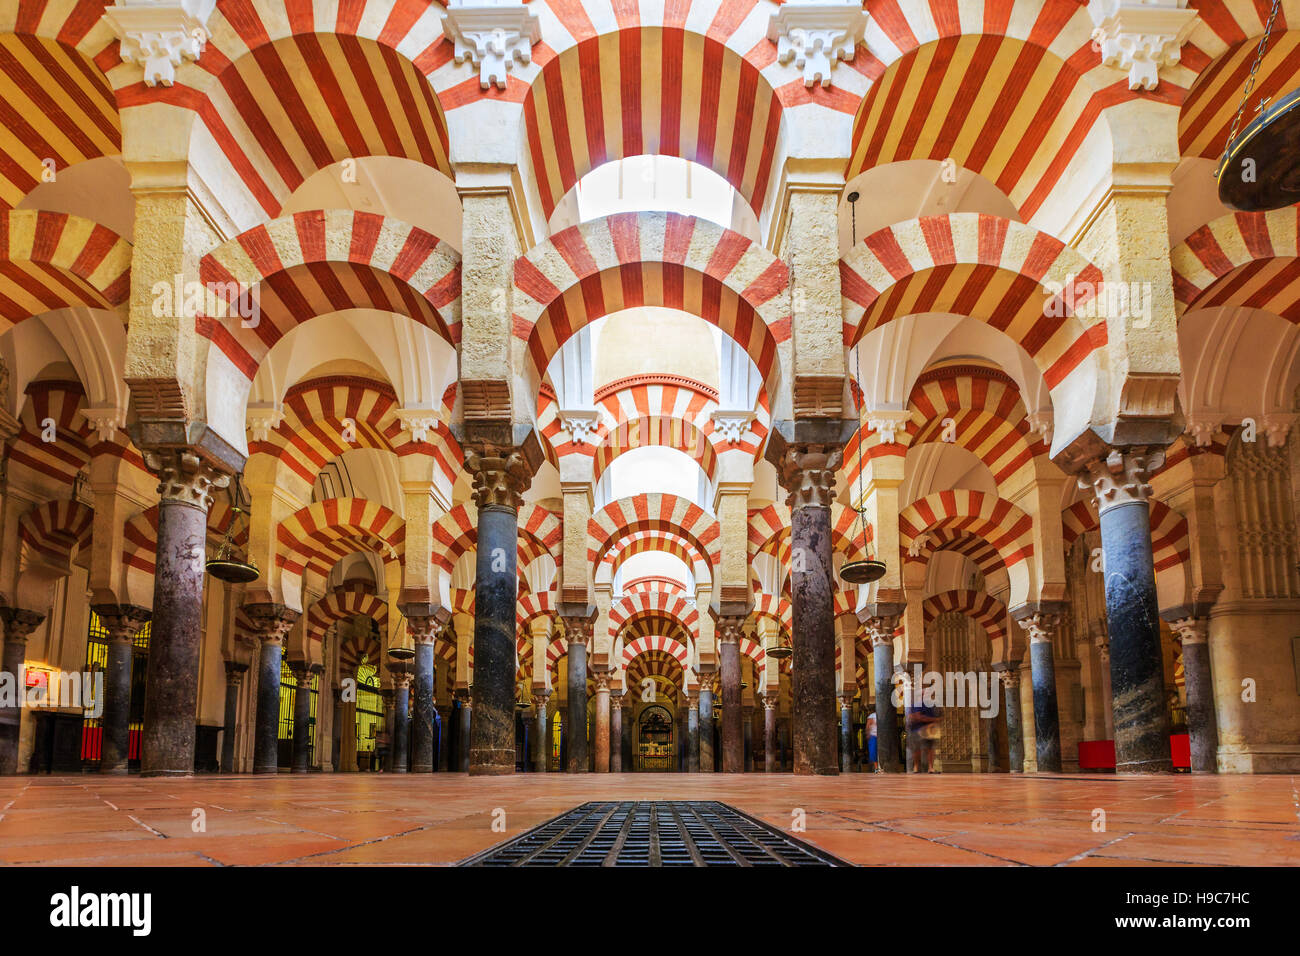 Cordoba spain interior view of la mezquita cathedral for Interior mezquita de cordoba